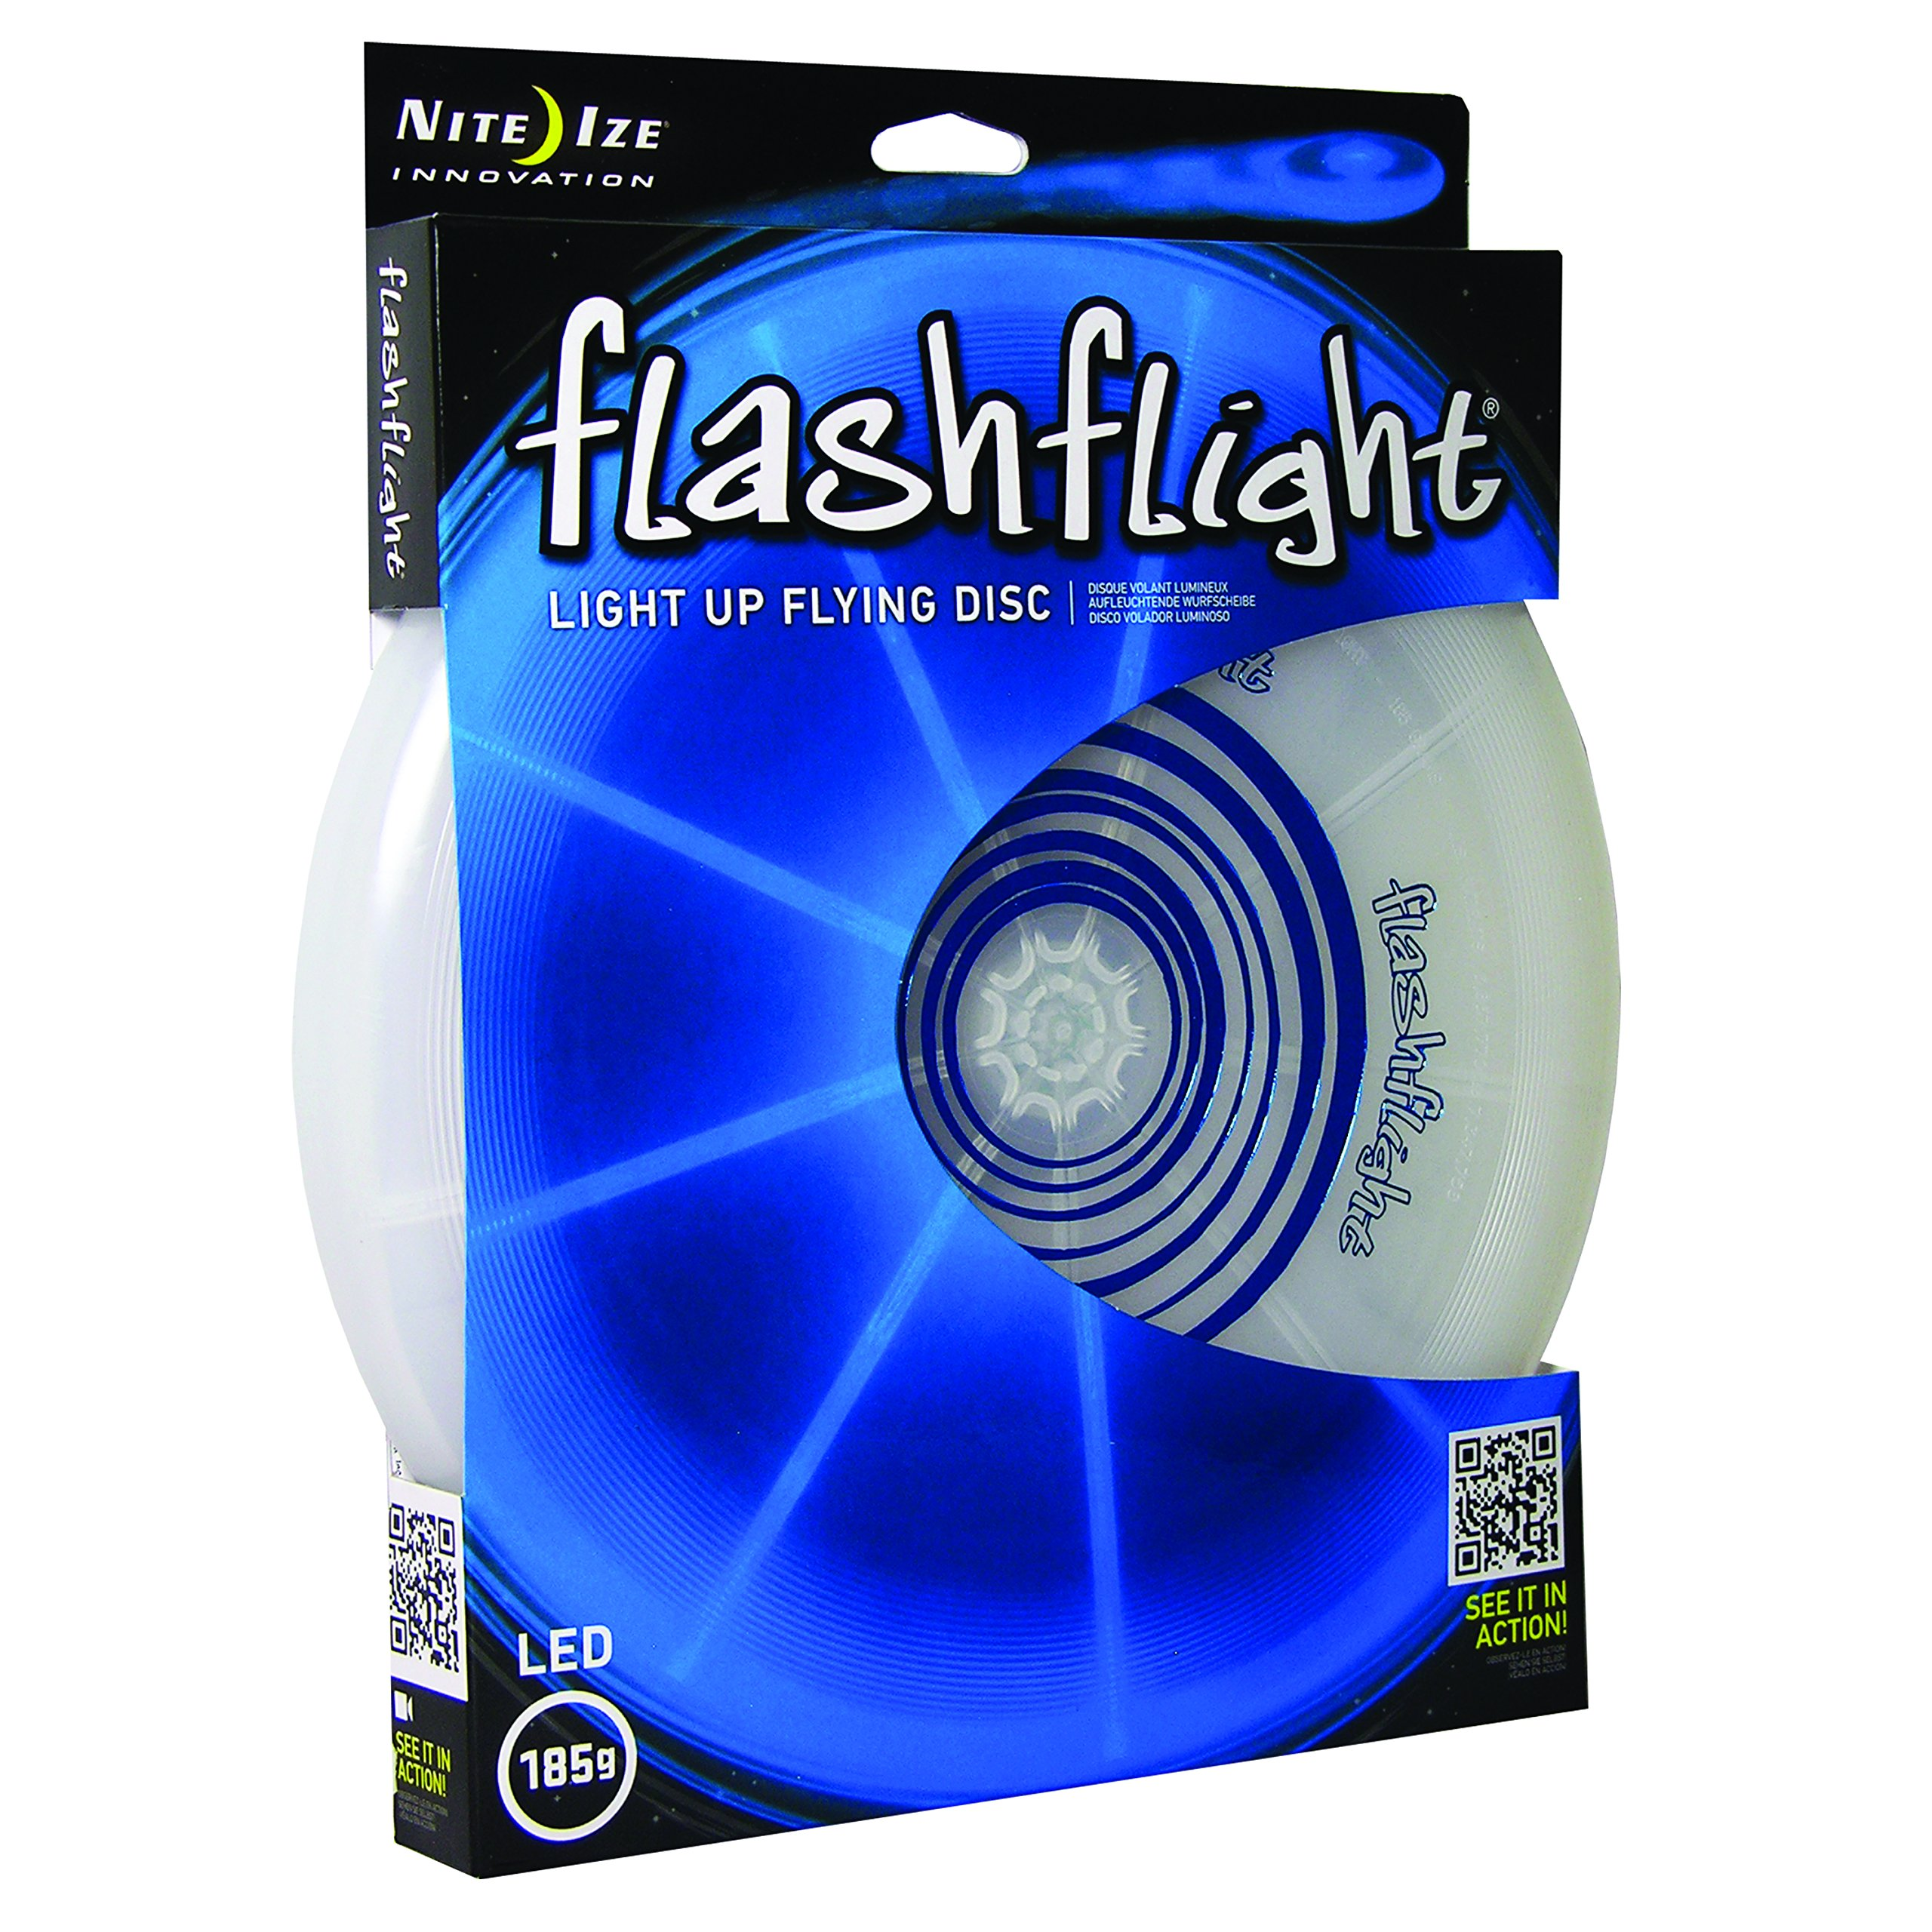 Nite Ize Flashflight LED Flying Disc, Light up the Dark for Night Games, 185g, Blue by Nite Ize